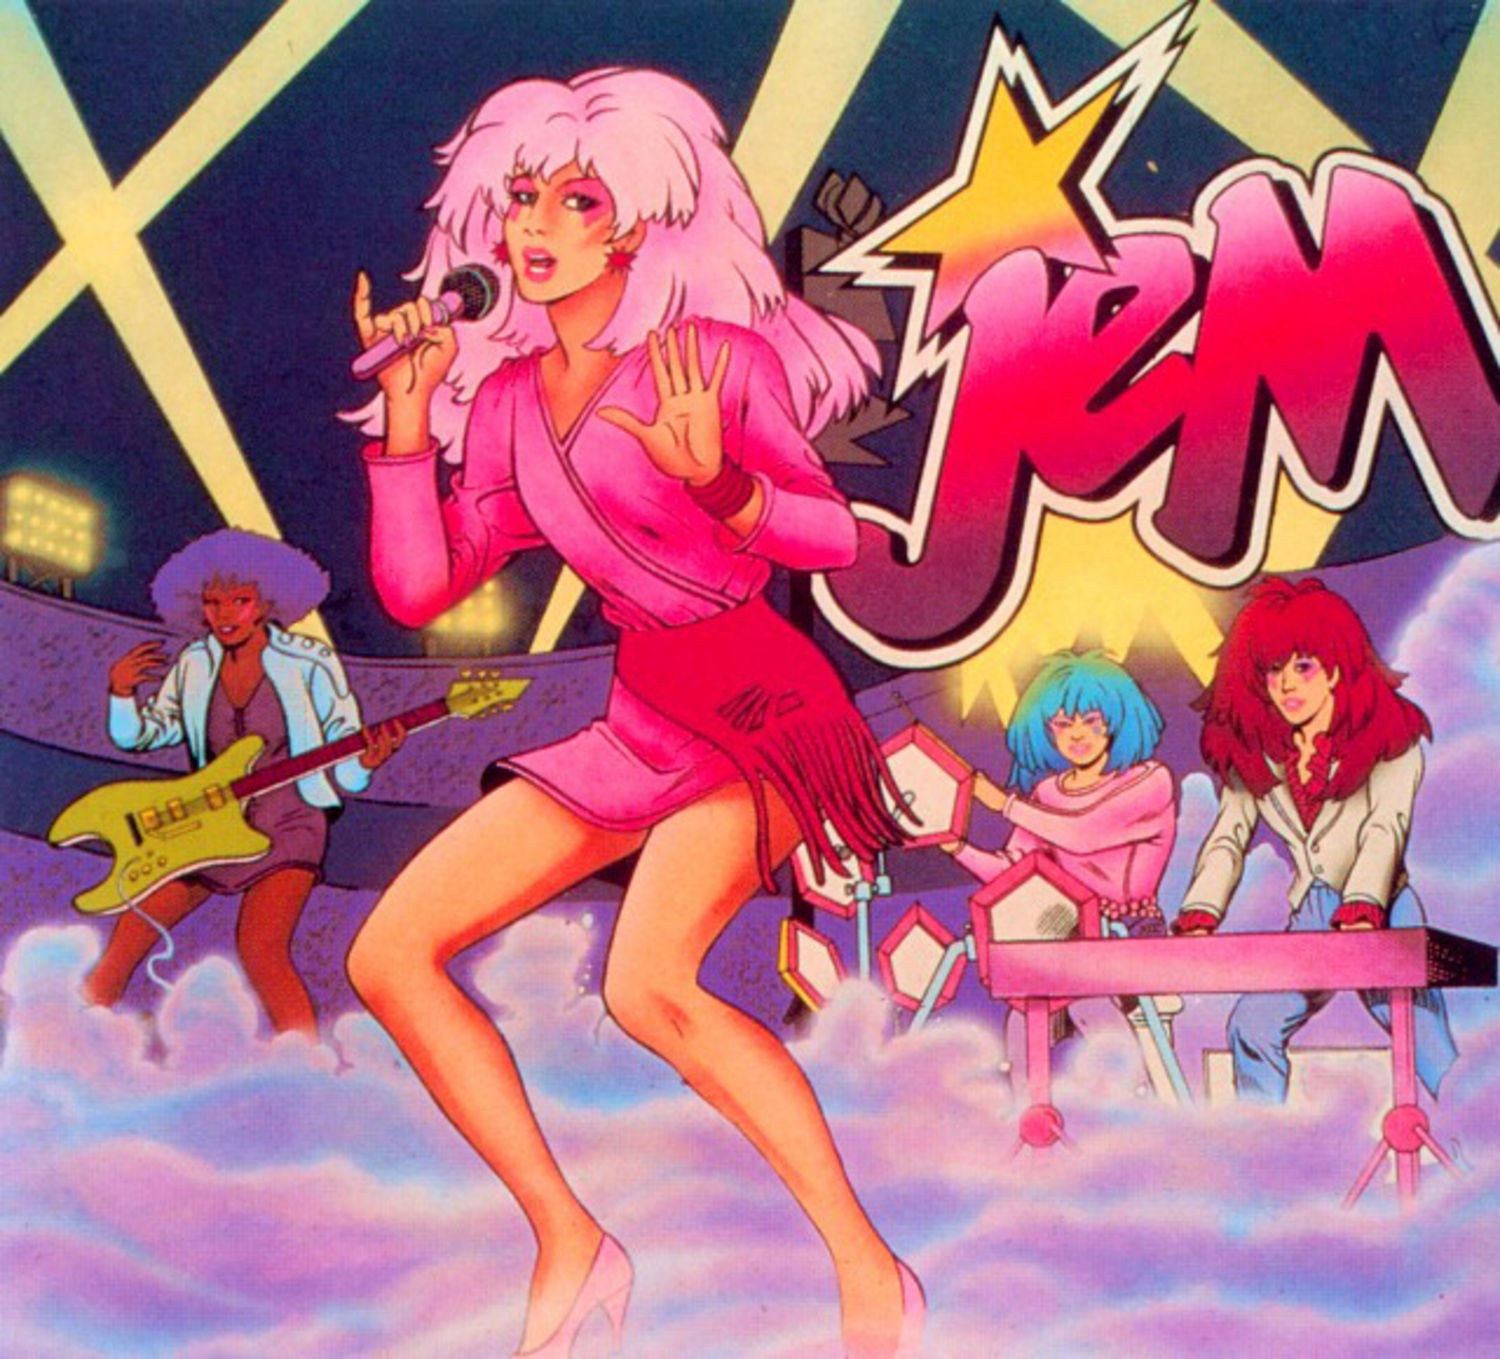 Jem jams and so do I. Also, Jem isn't creaky.